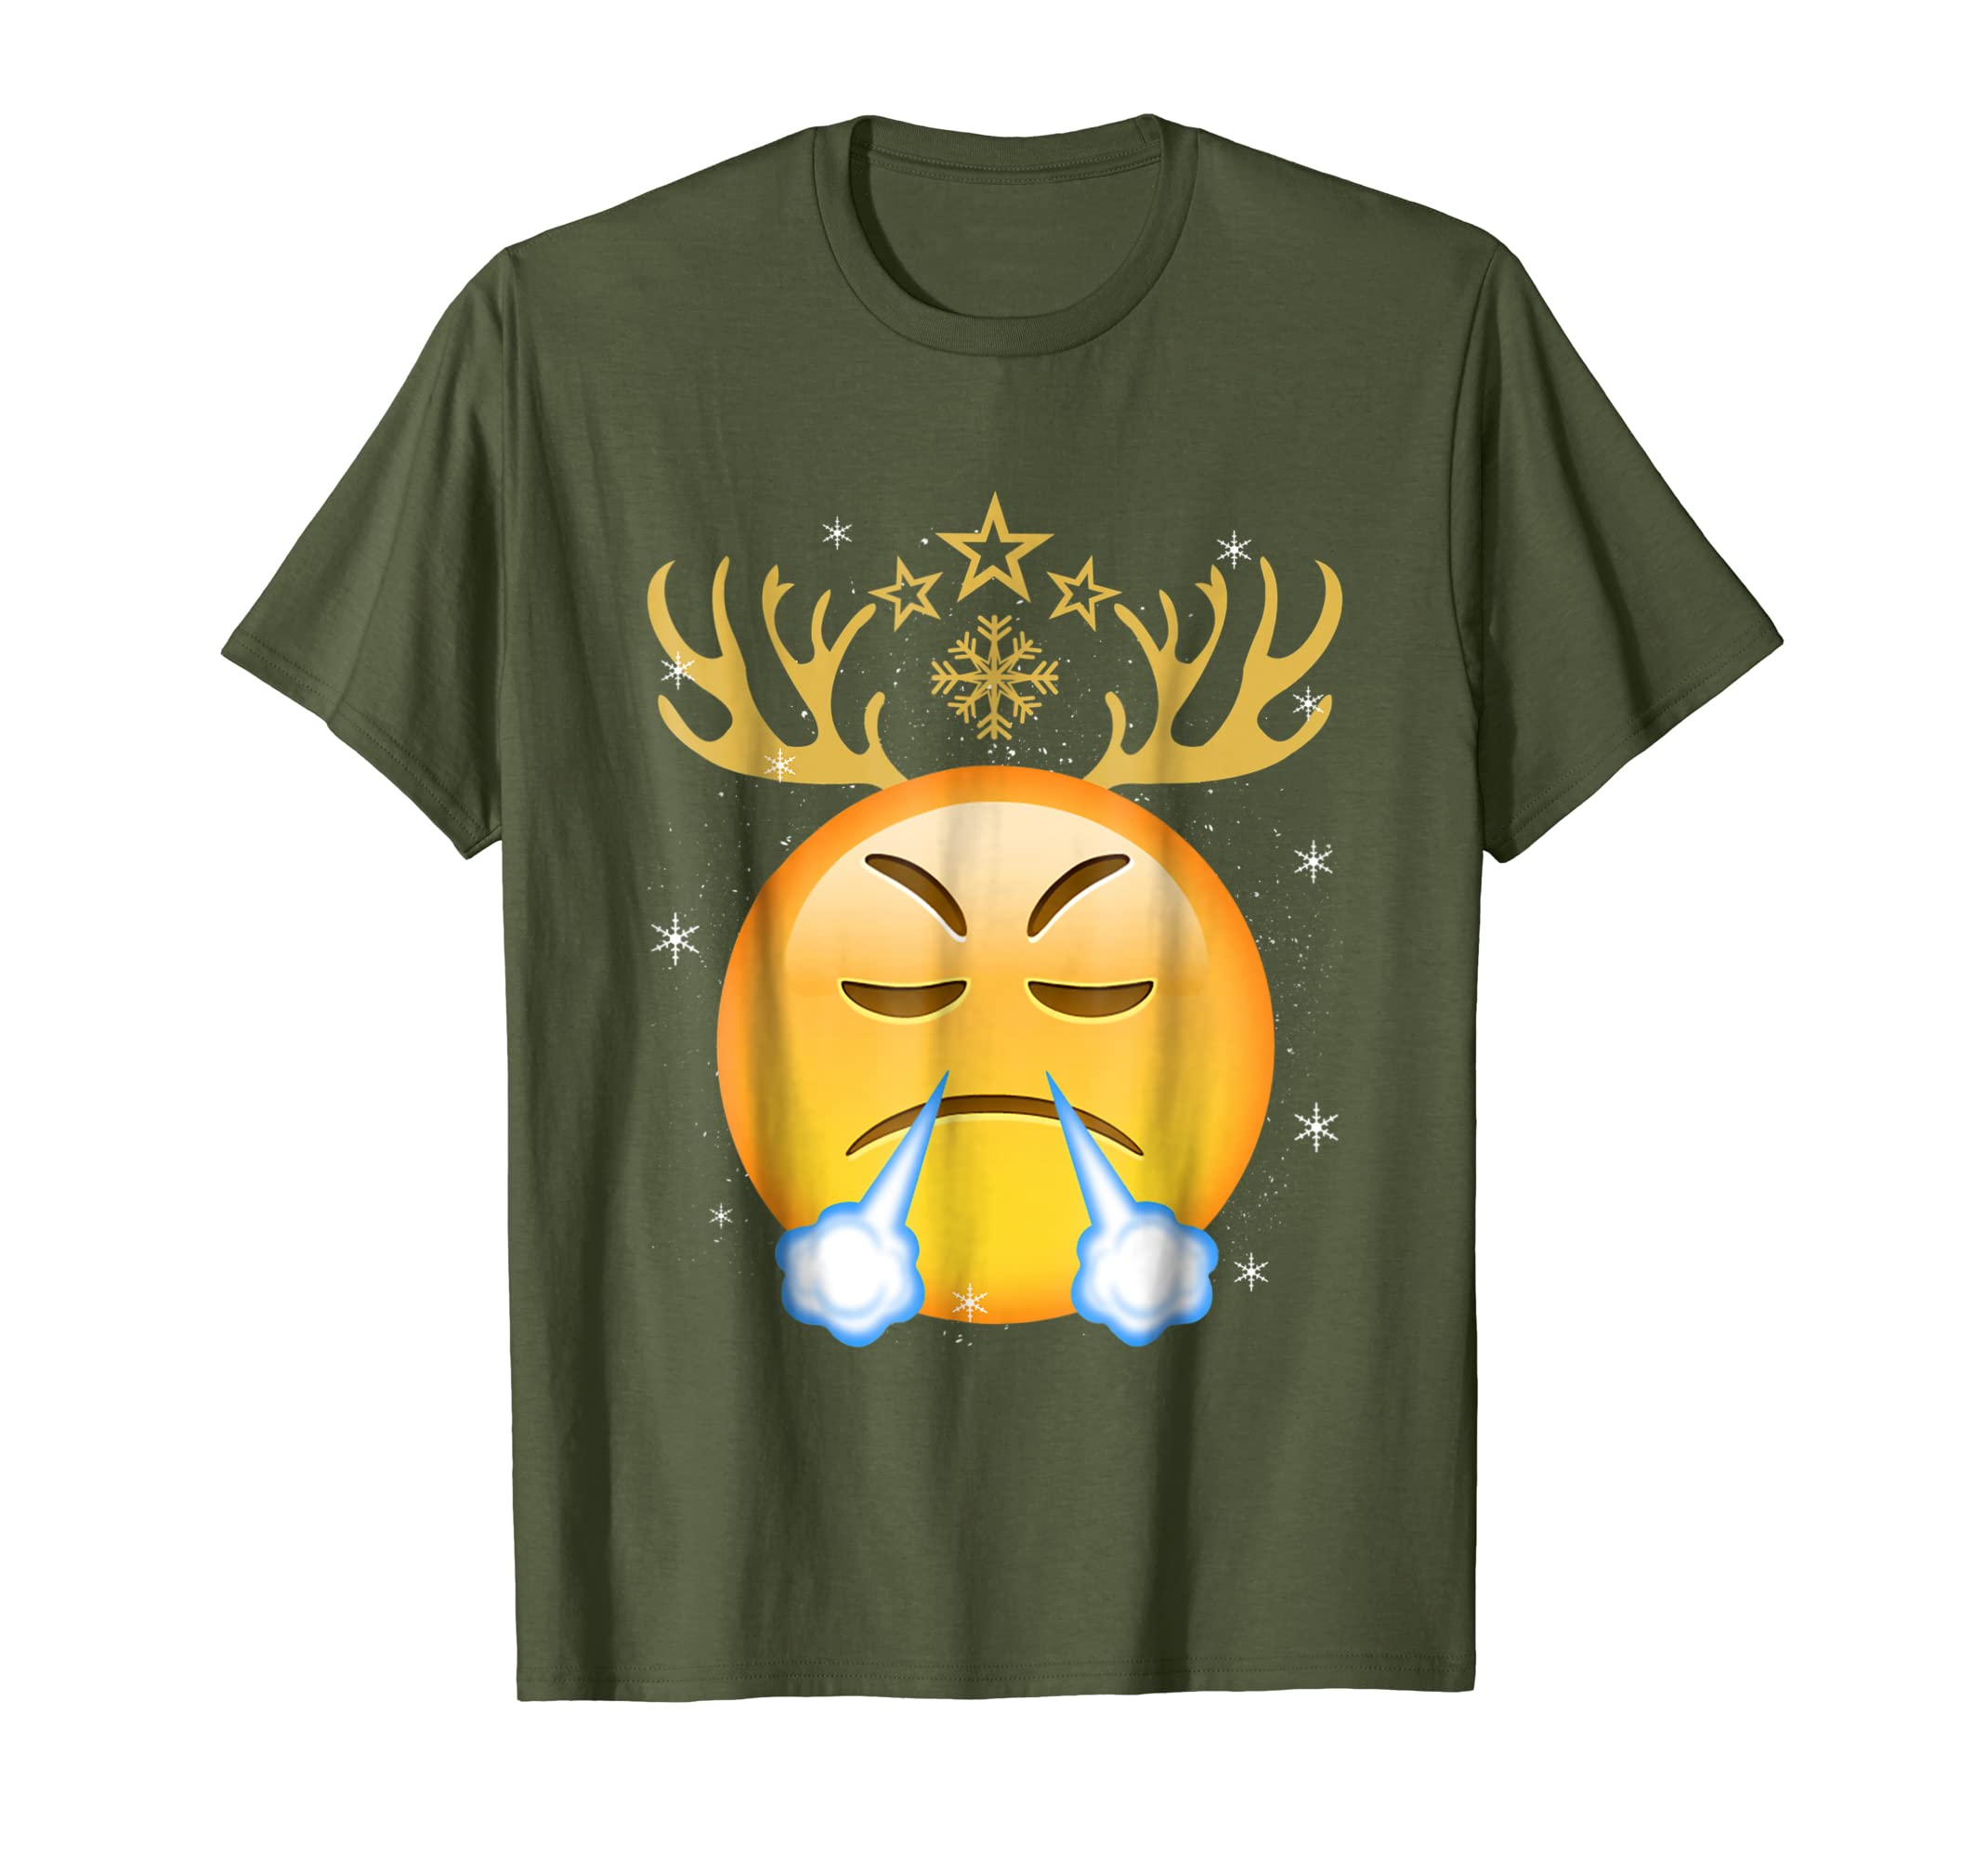 78a05ddfc Amazon.com: Reindeer Face With Look Of Triumph Christmas Shirt Xmas Gift:  Clothing